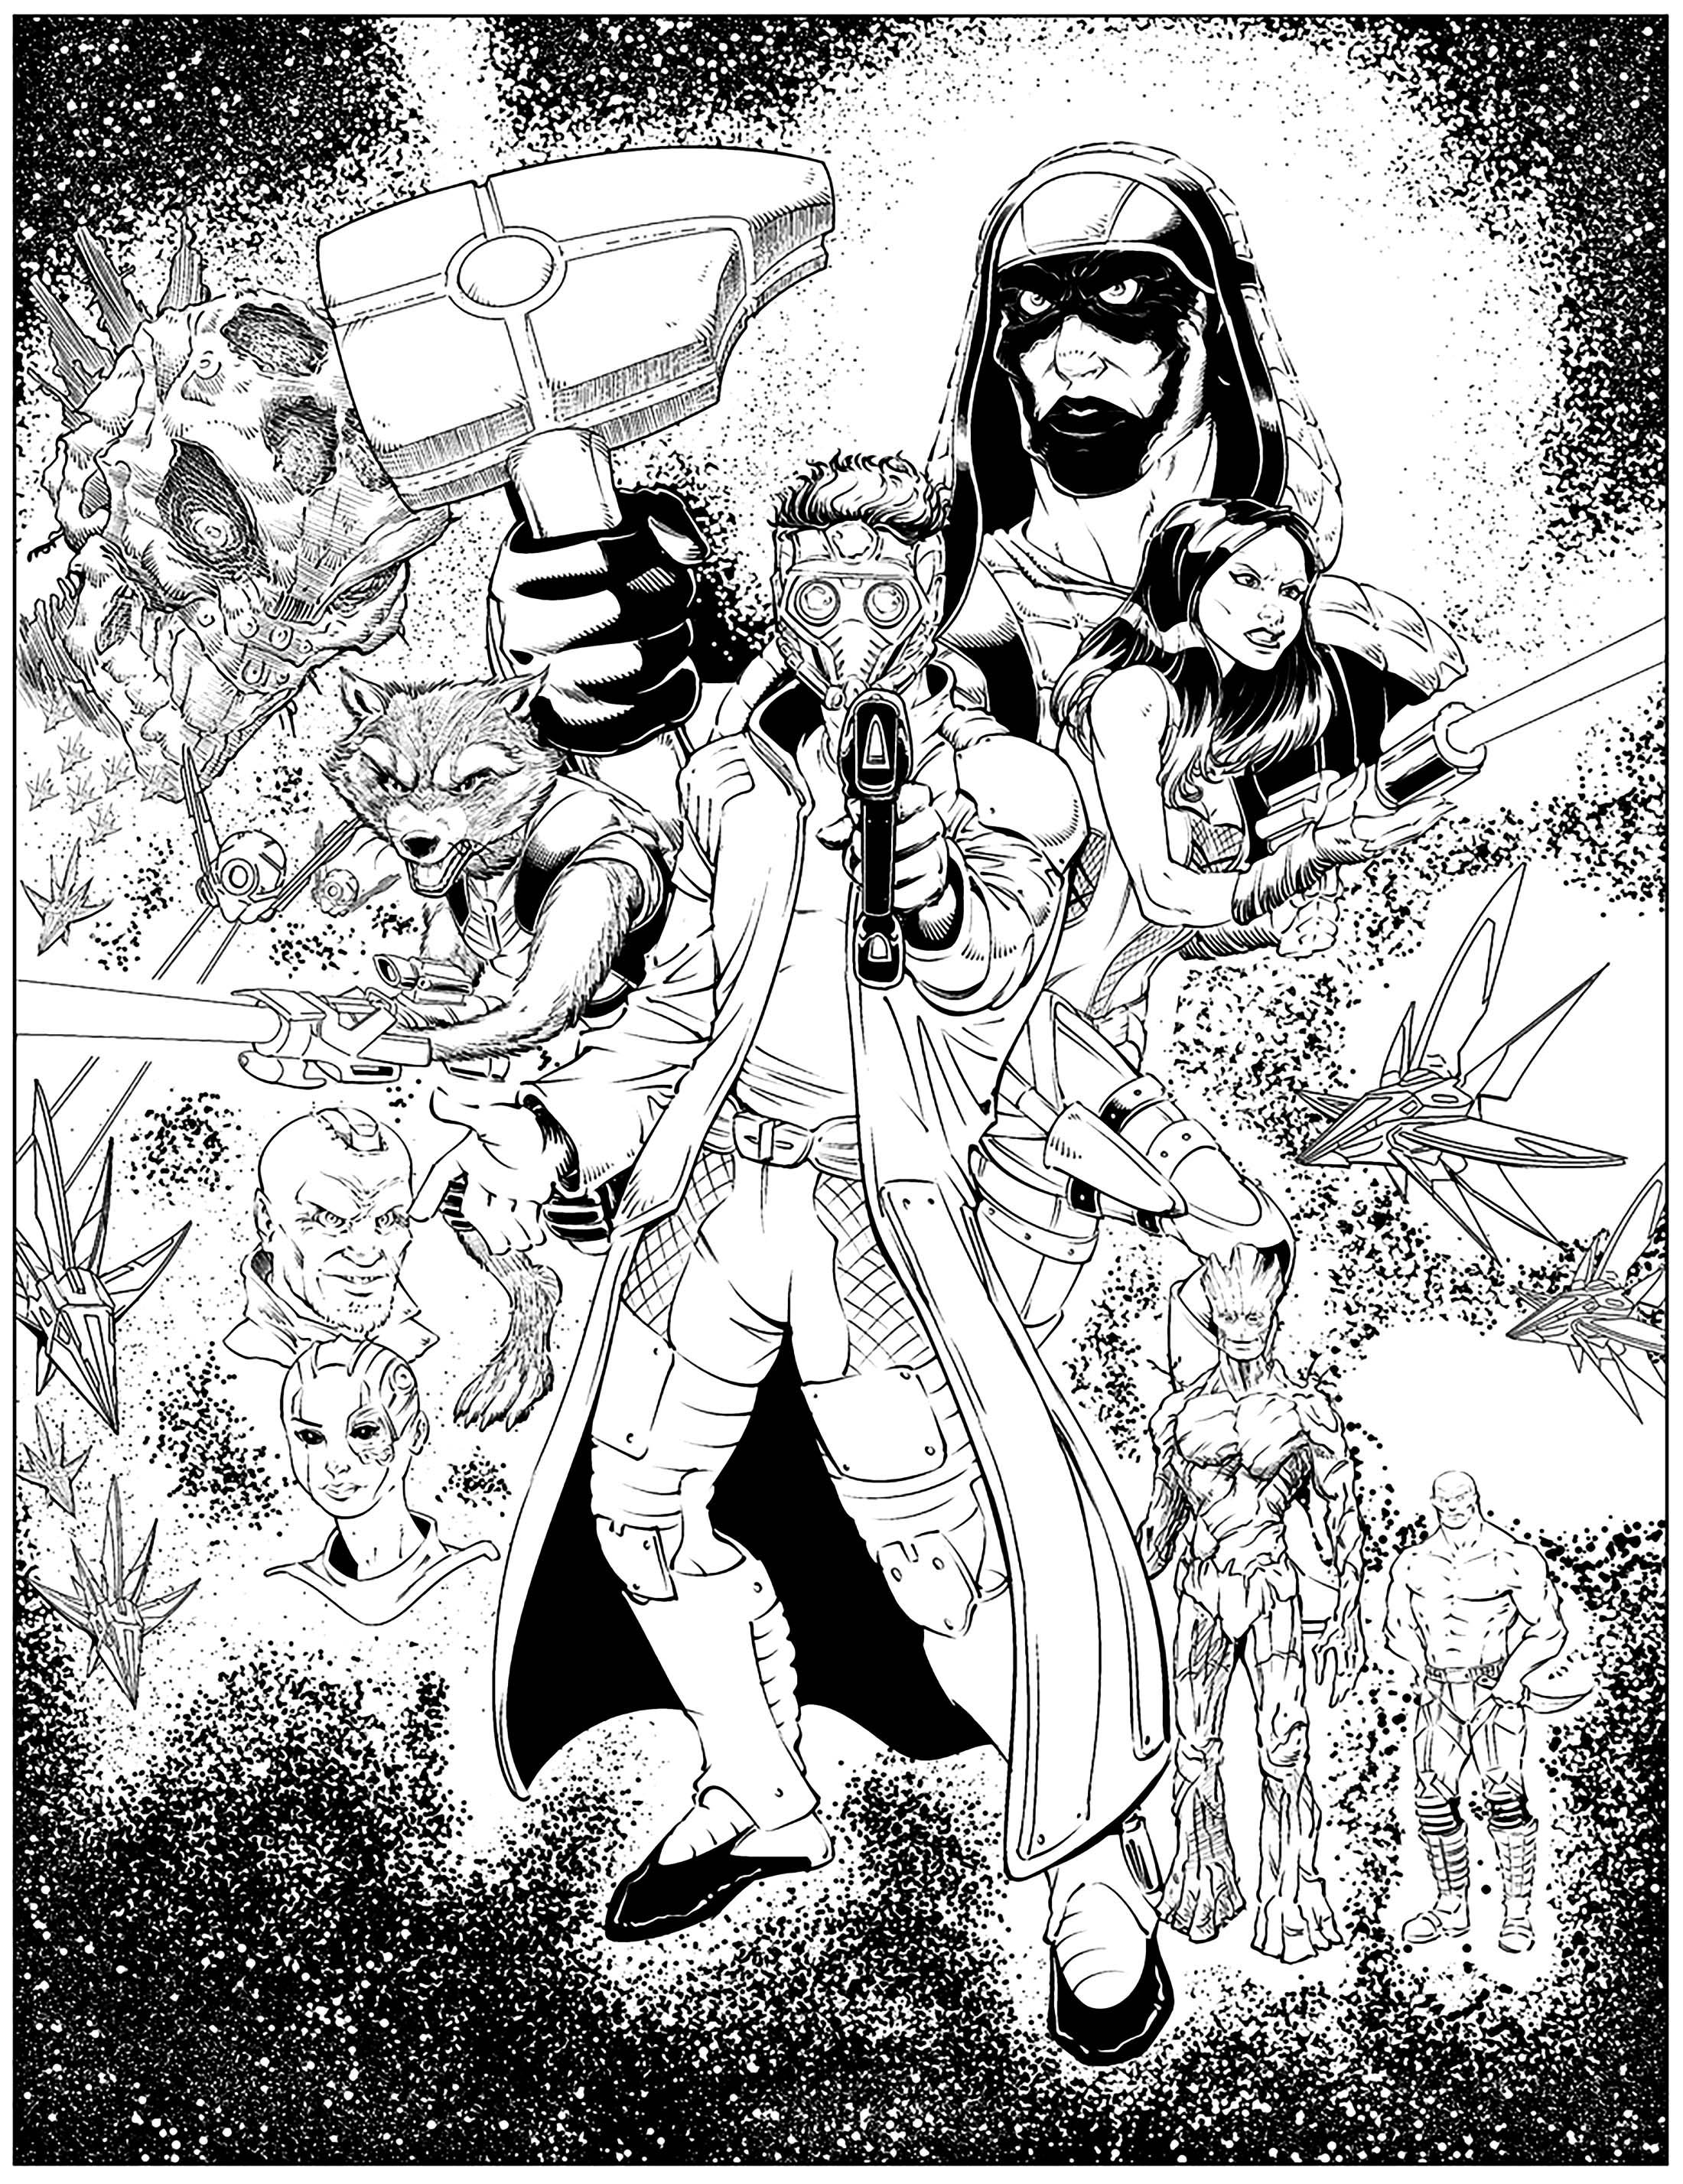 Fan art guardians of the galaxy will robson Books Adult Coloring Pages